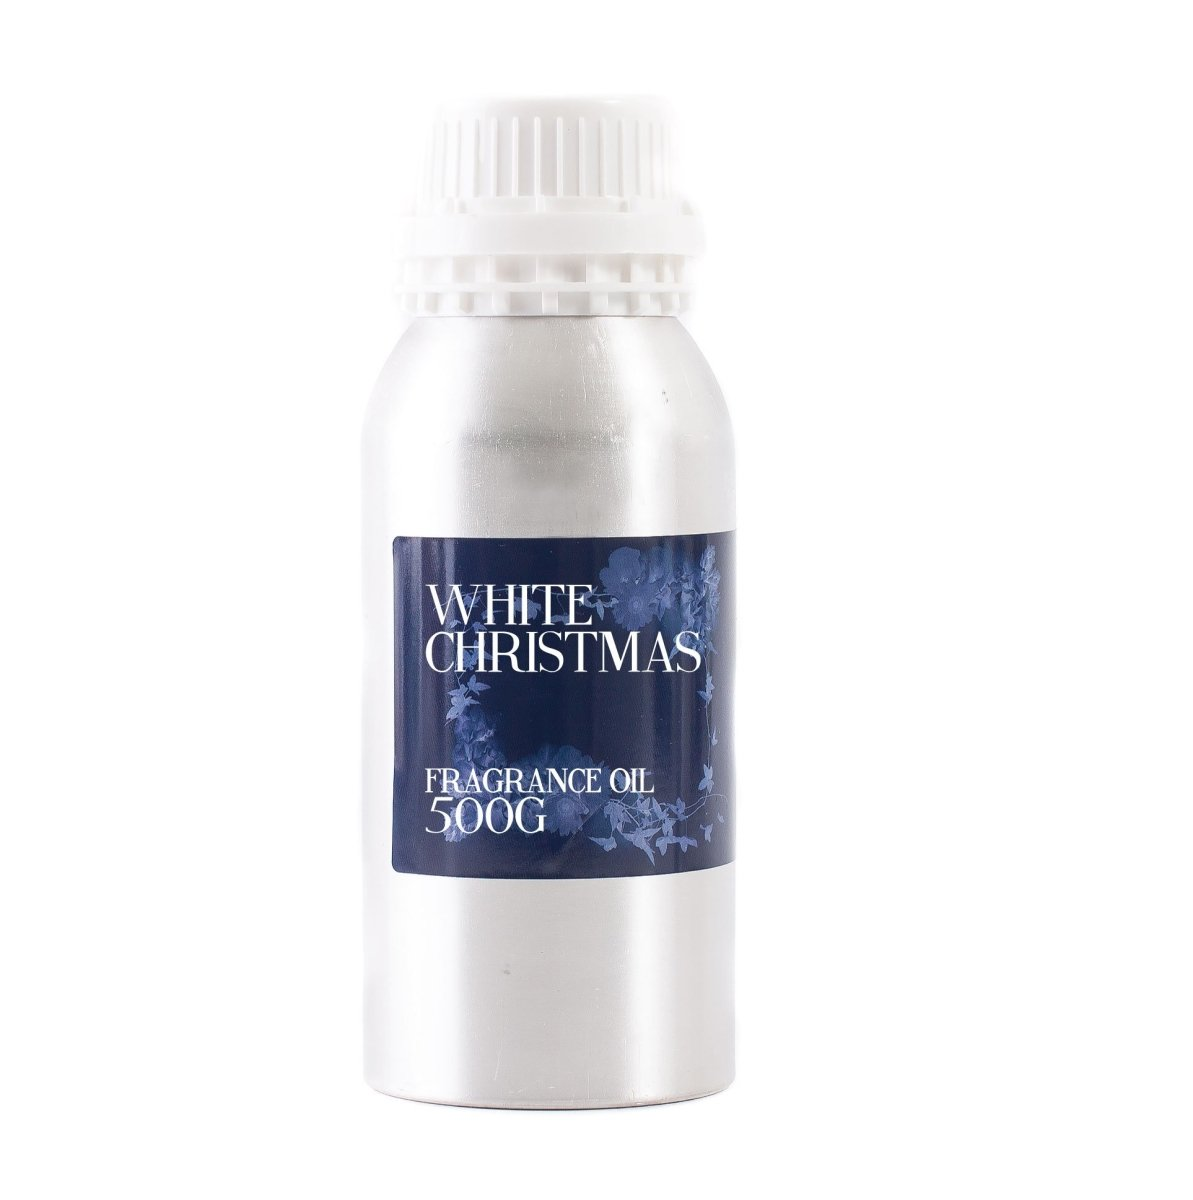 White Christmas Fragrance Oil - Mystic Moments UK